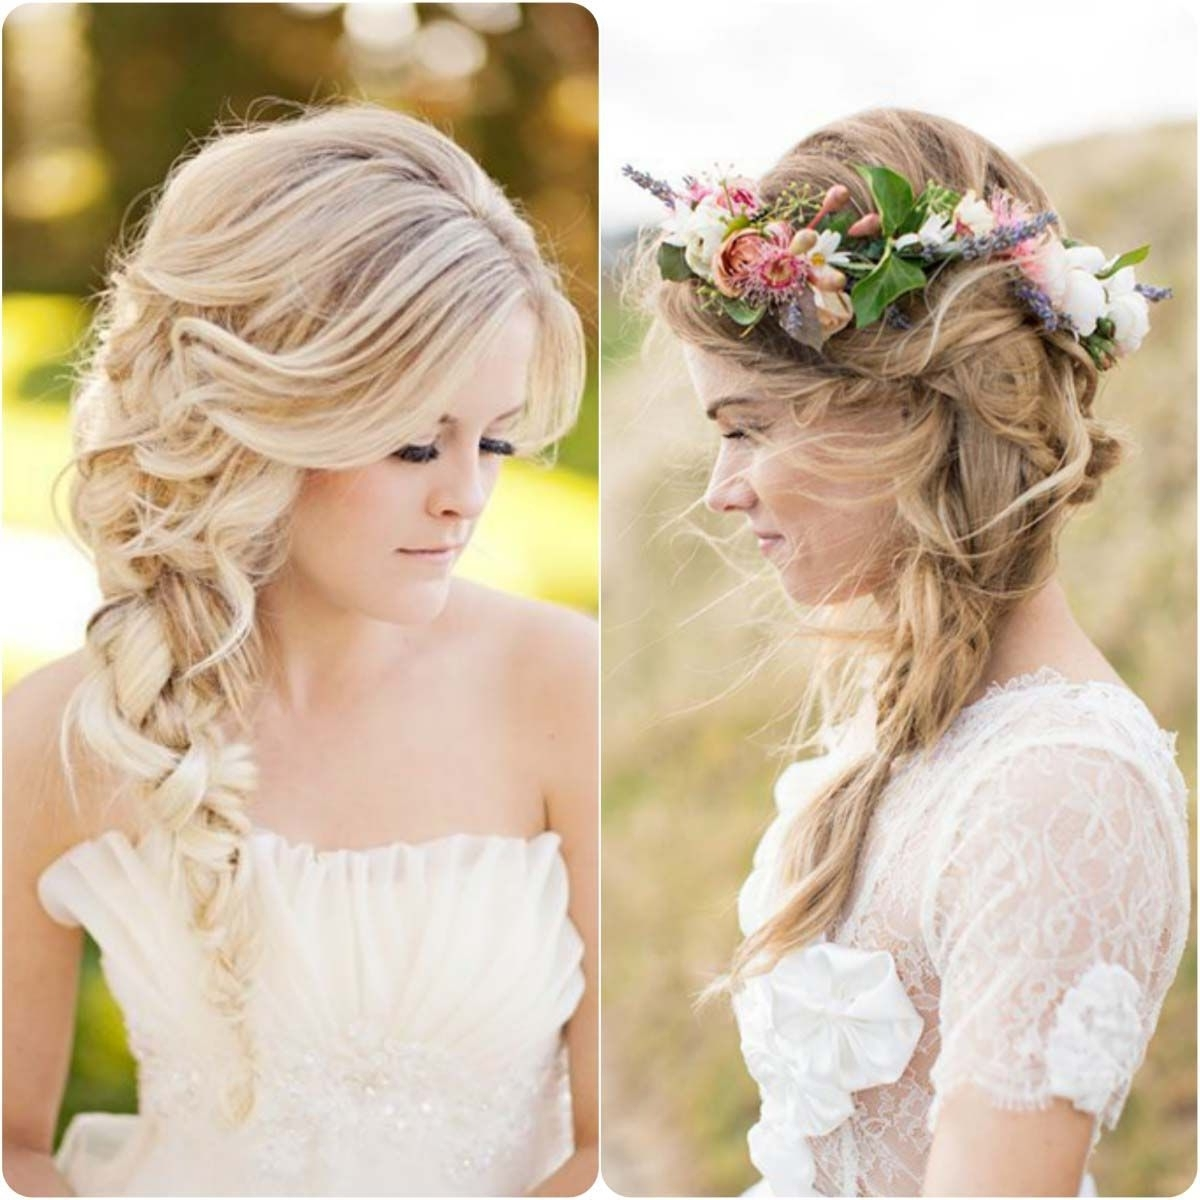 Most Current Side Braid Wedding Hairstyles With Stunning Messysidebraidsstyloplanetcom Wedding Pict For Hair Side (View 5 of 15)